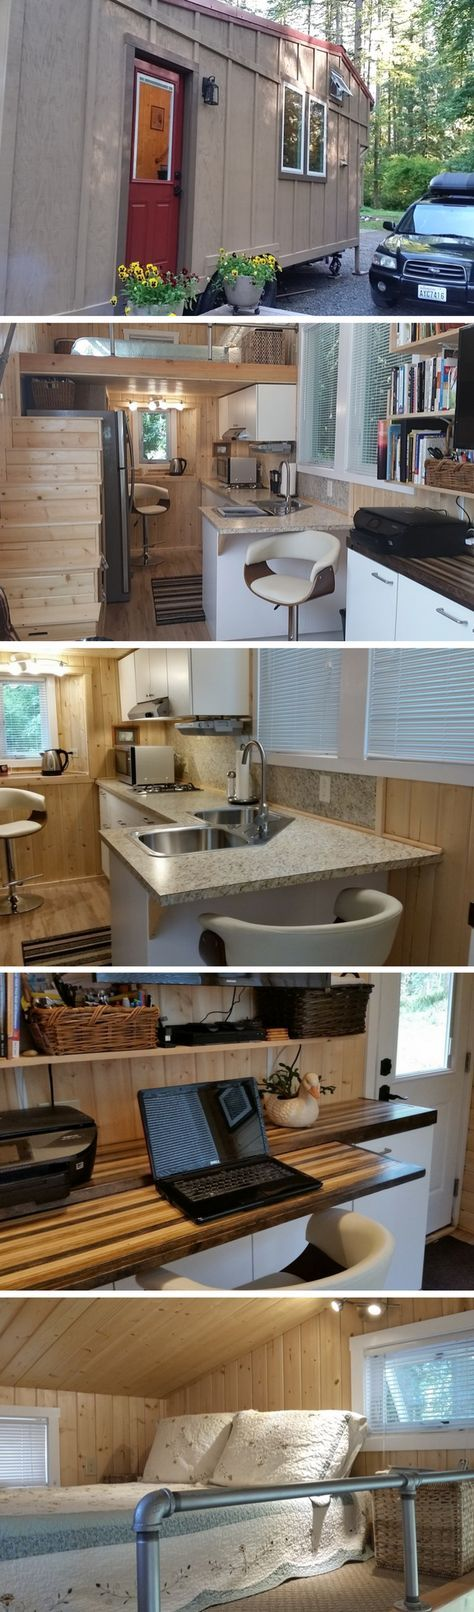 A 243 sq ft tiny house with a full kitchen, bathroom, loft bedroom, and a work/entertainment room with a desk and bookshelves